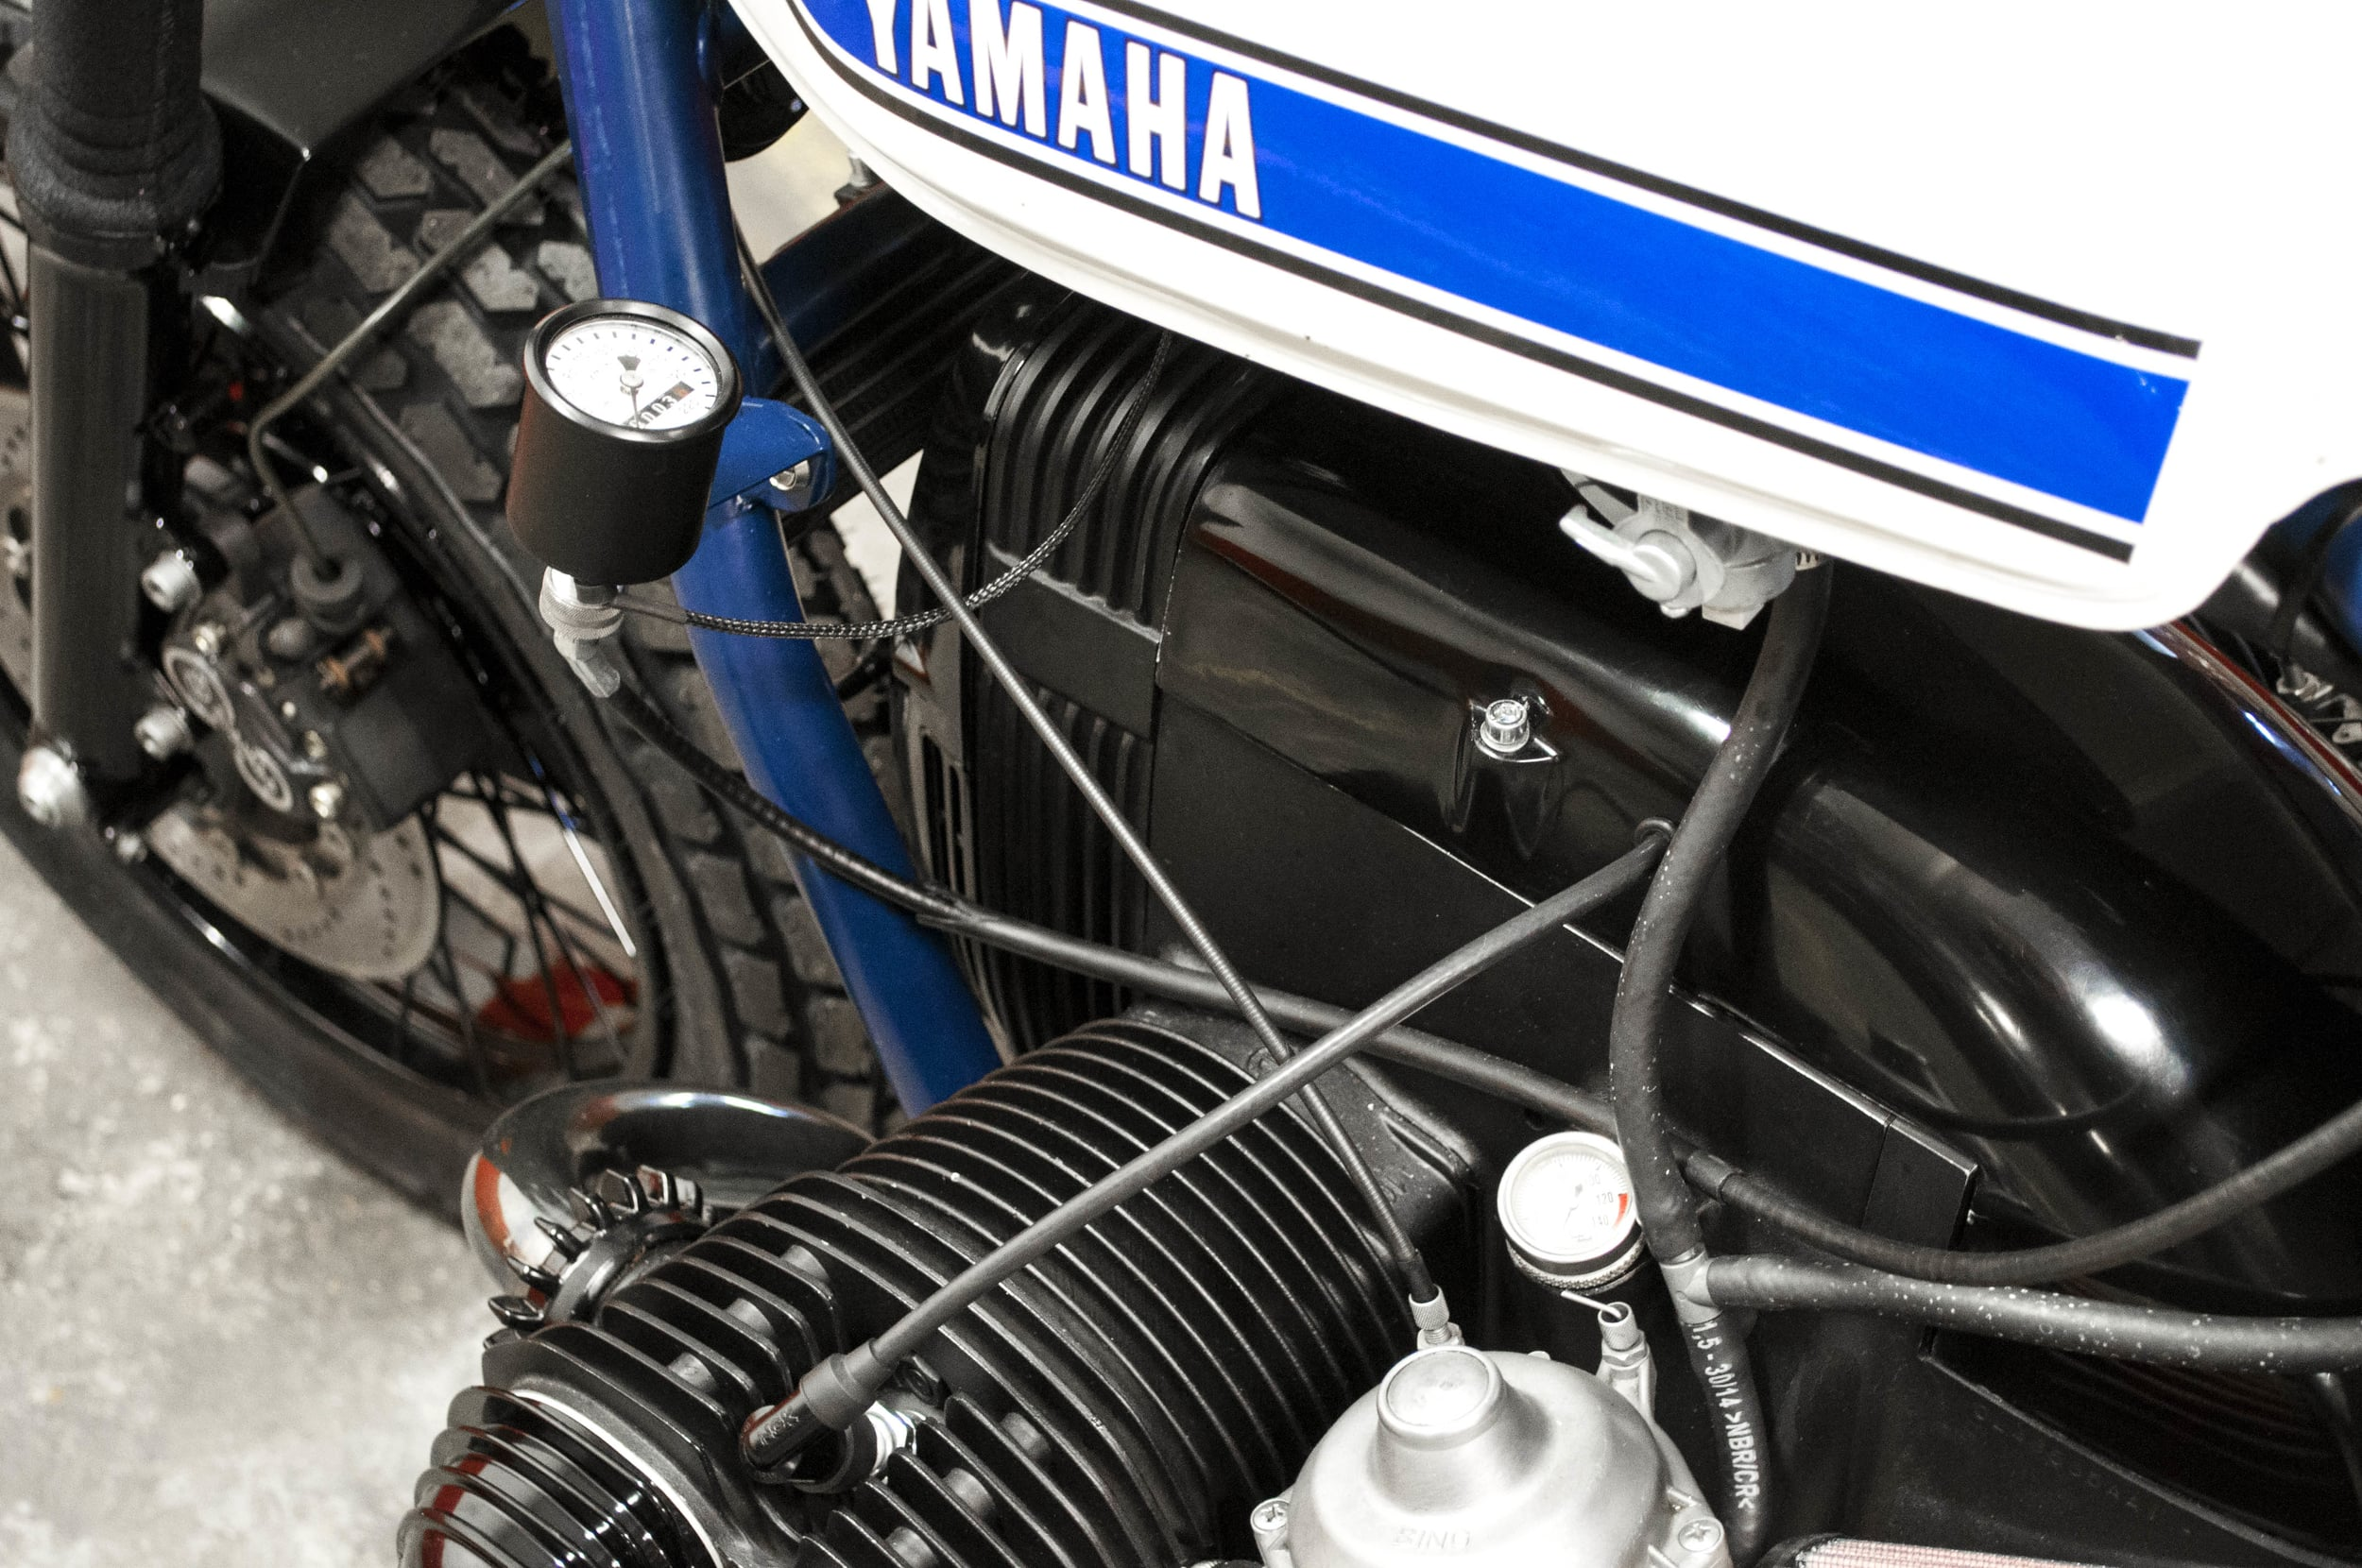 - fully rebuilt top end engine (pistons, rings, valves);  - brand new TCI - AC/CDI ignition system;  - tiny speedometer mounted of the left end side of the frame.